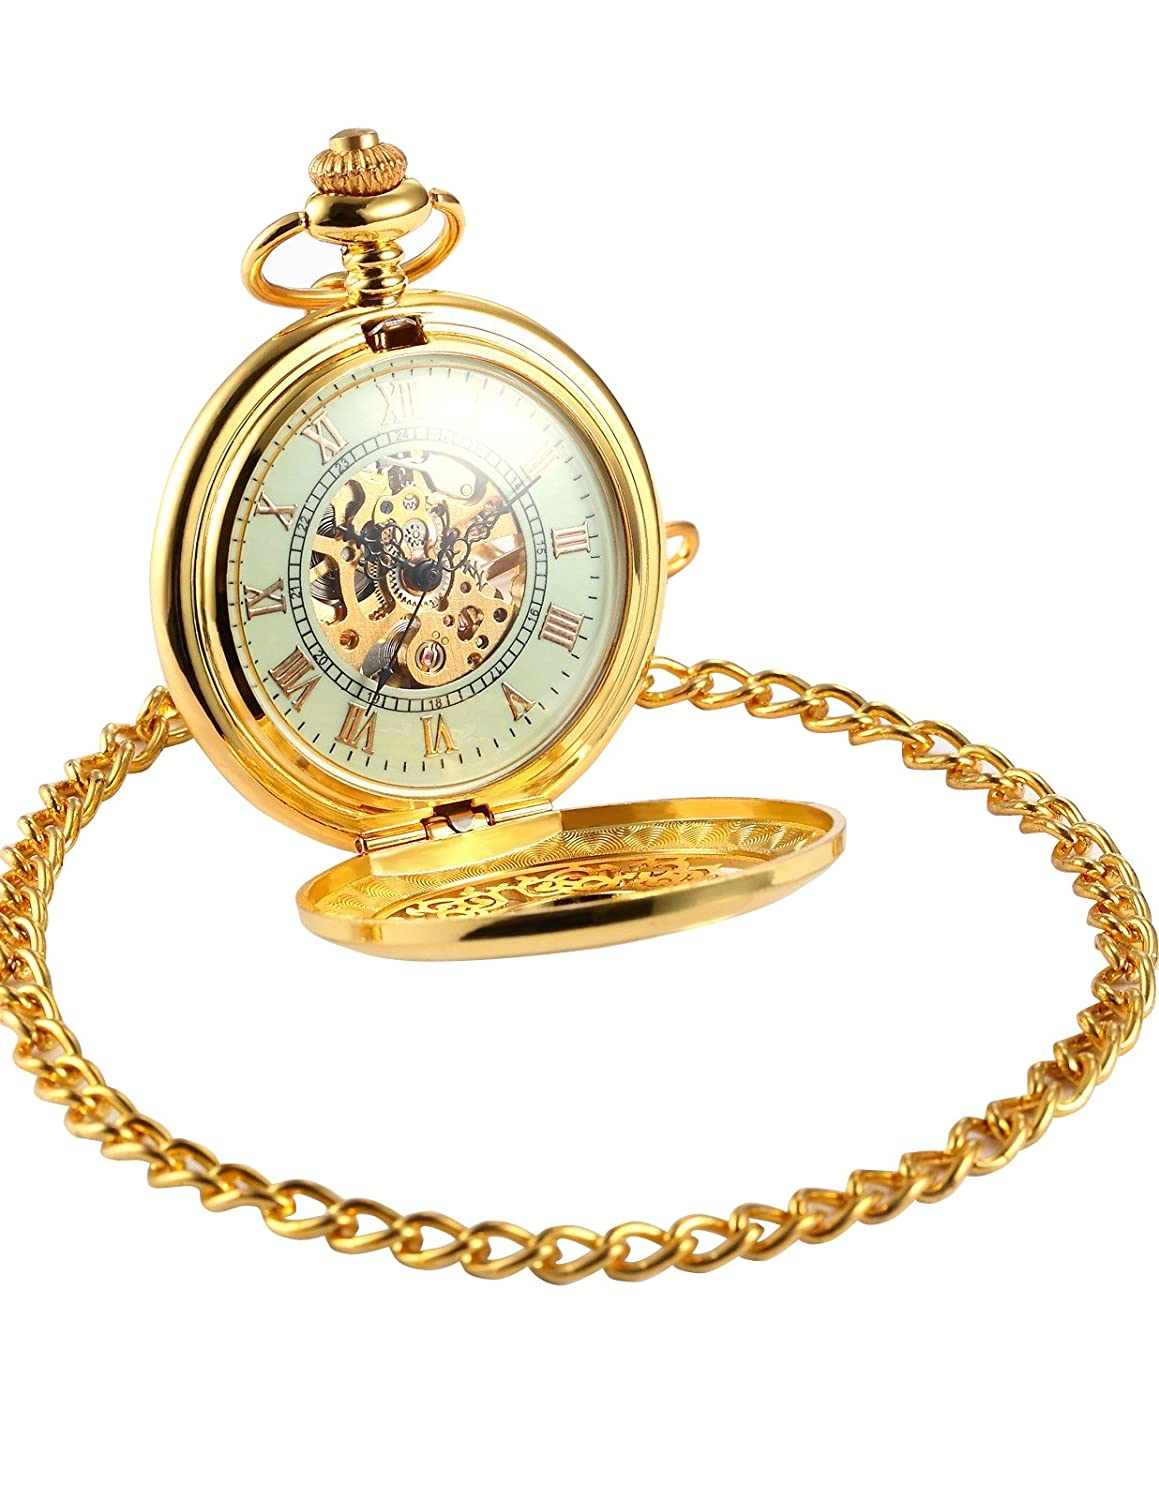 3fcadbc0d Amazon.com: AMPM24 Luxury Golden Luminous Men's Mechanical Pocket Watch +  Chain Gift WPK020: Watches